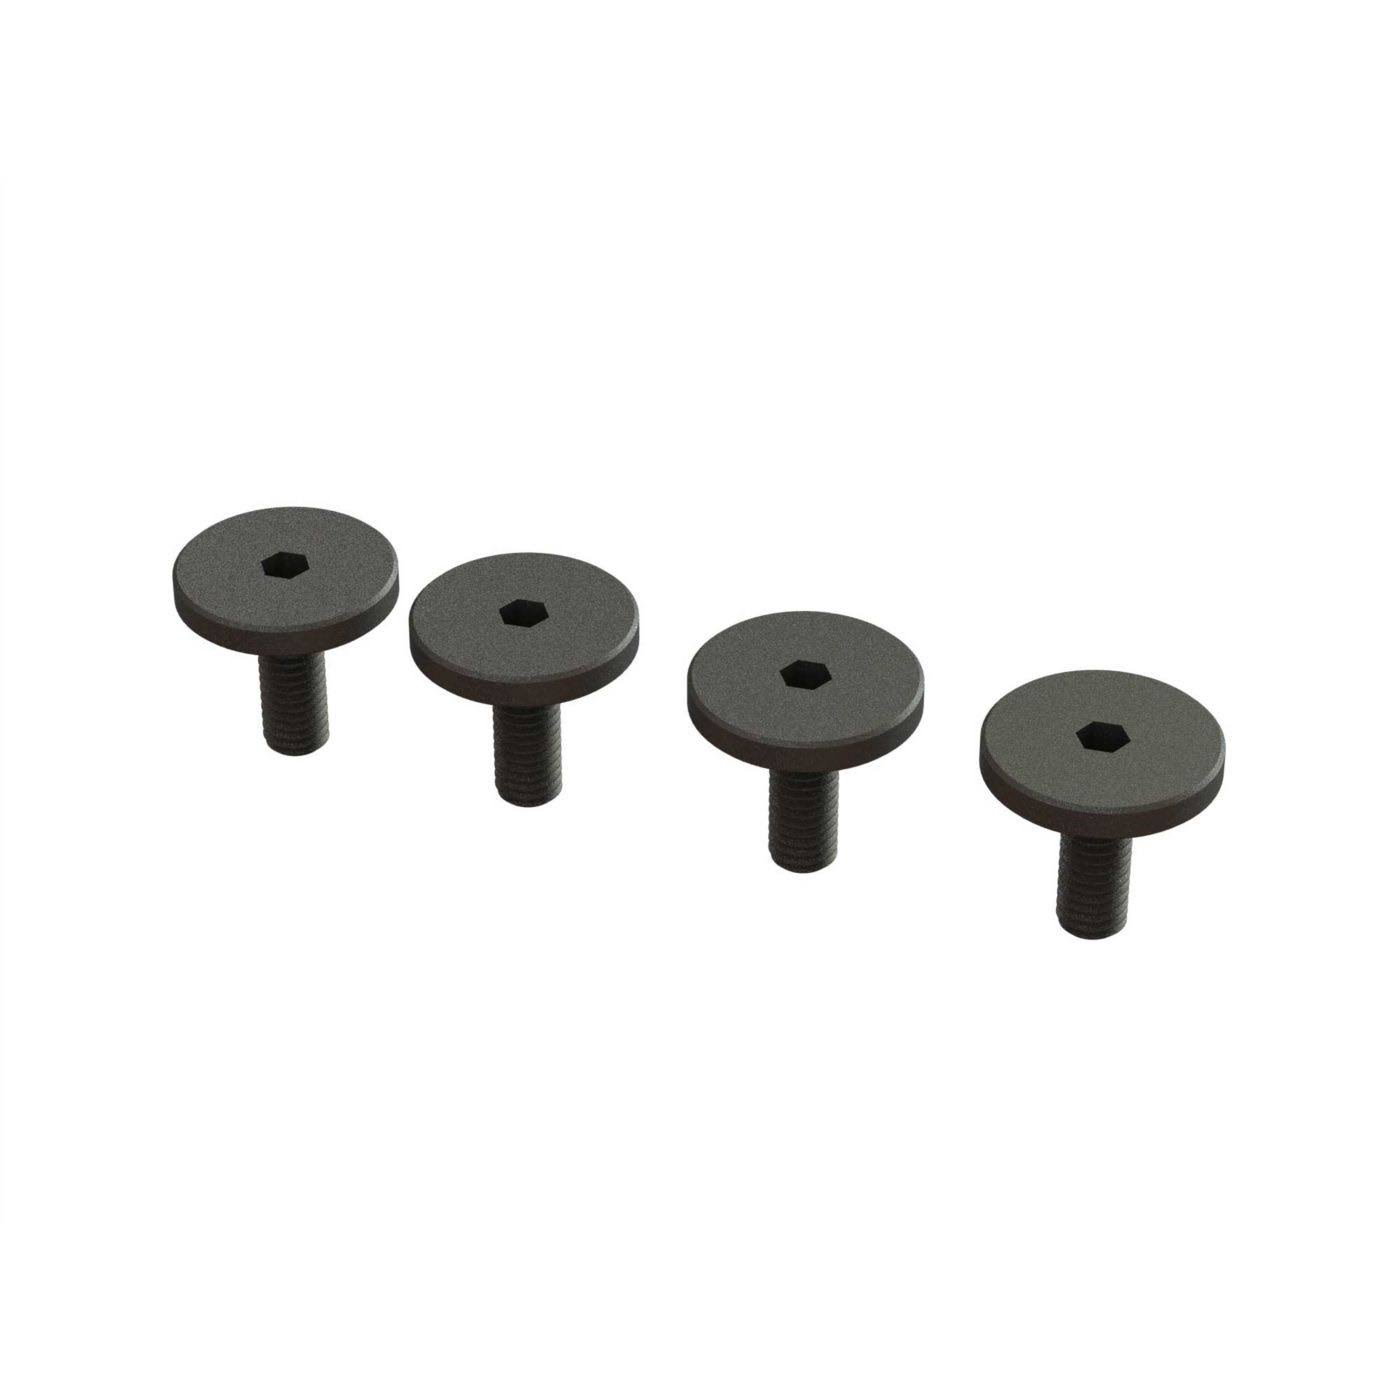 Arrma ARA727308 Large Head Screw - M3x8mm, 4pcs